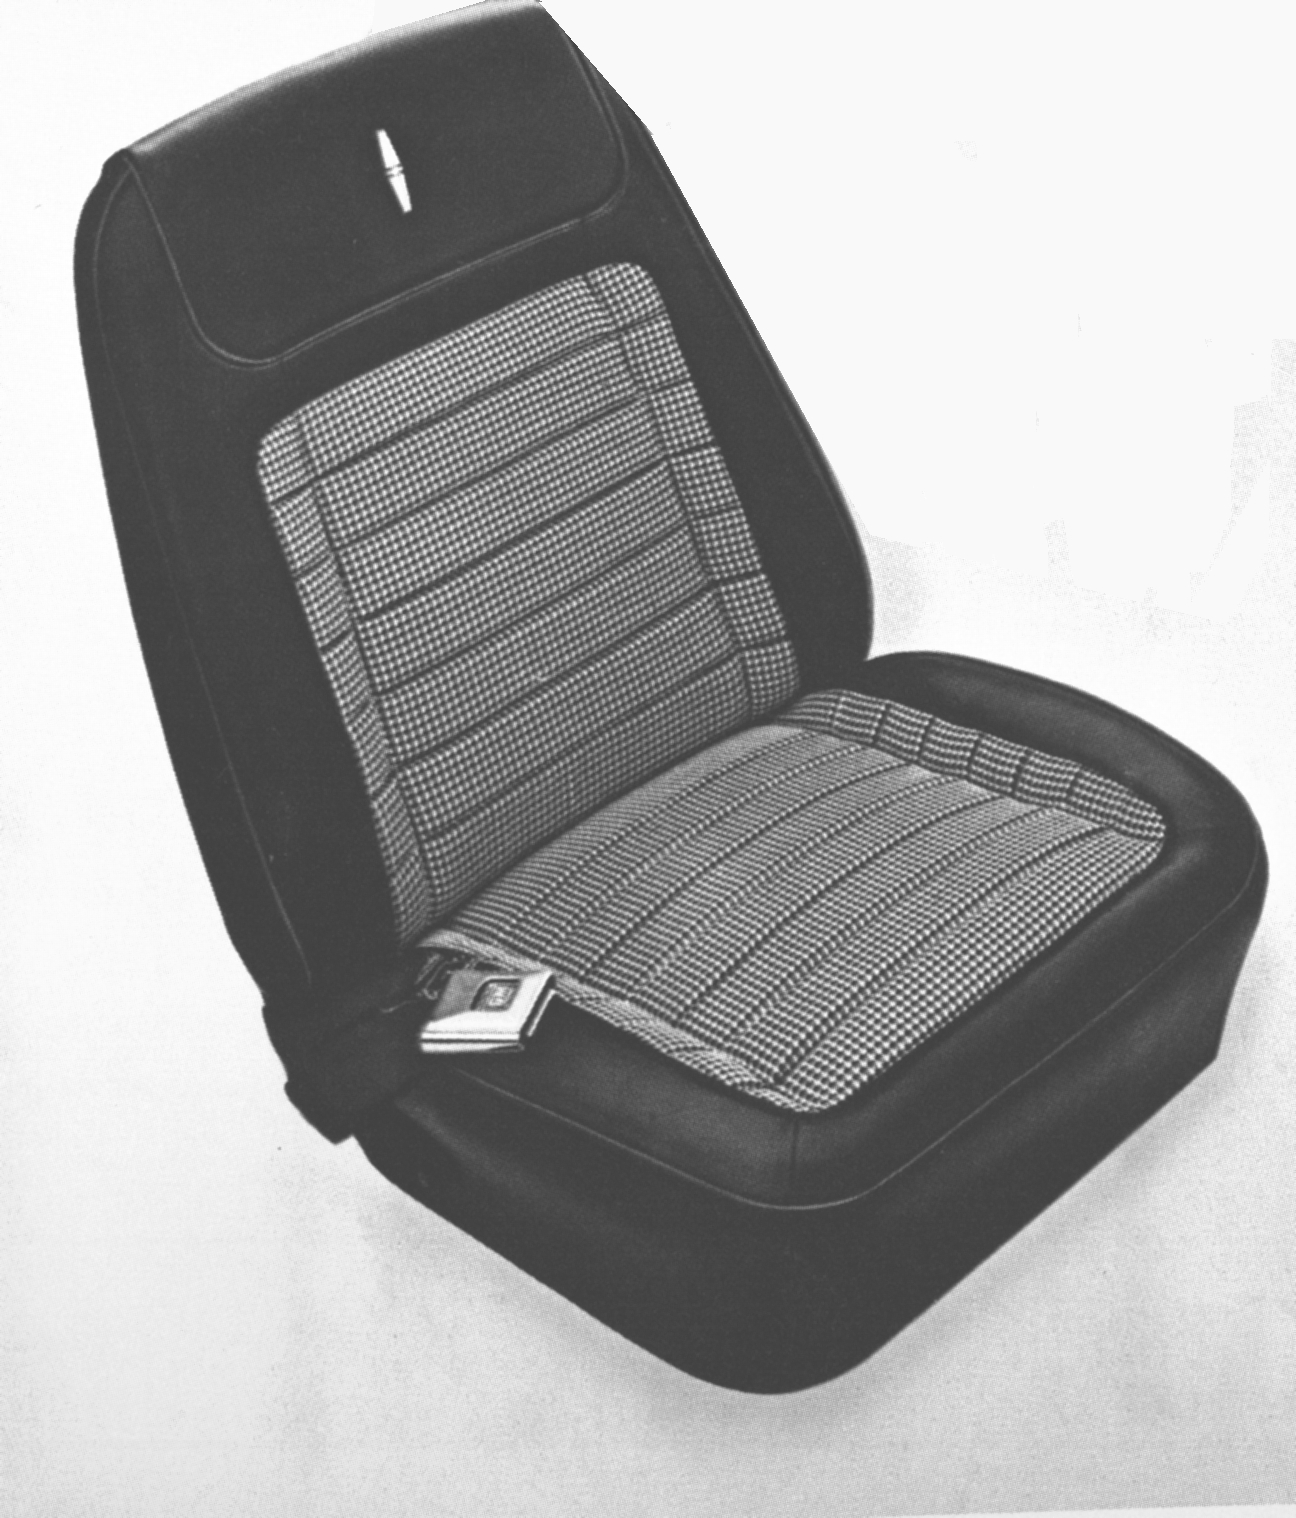 Surprising 1968 Camaro Deluxe Pre Assembled Bucket Seats Covers Houndstooth White Vinyl Pair Onthecornerstone Fun Painted Chair Ideas Images Onthecornerstoneorg